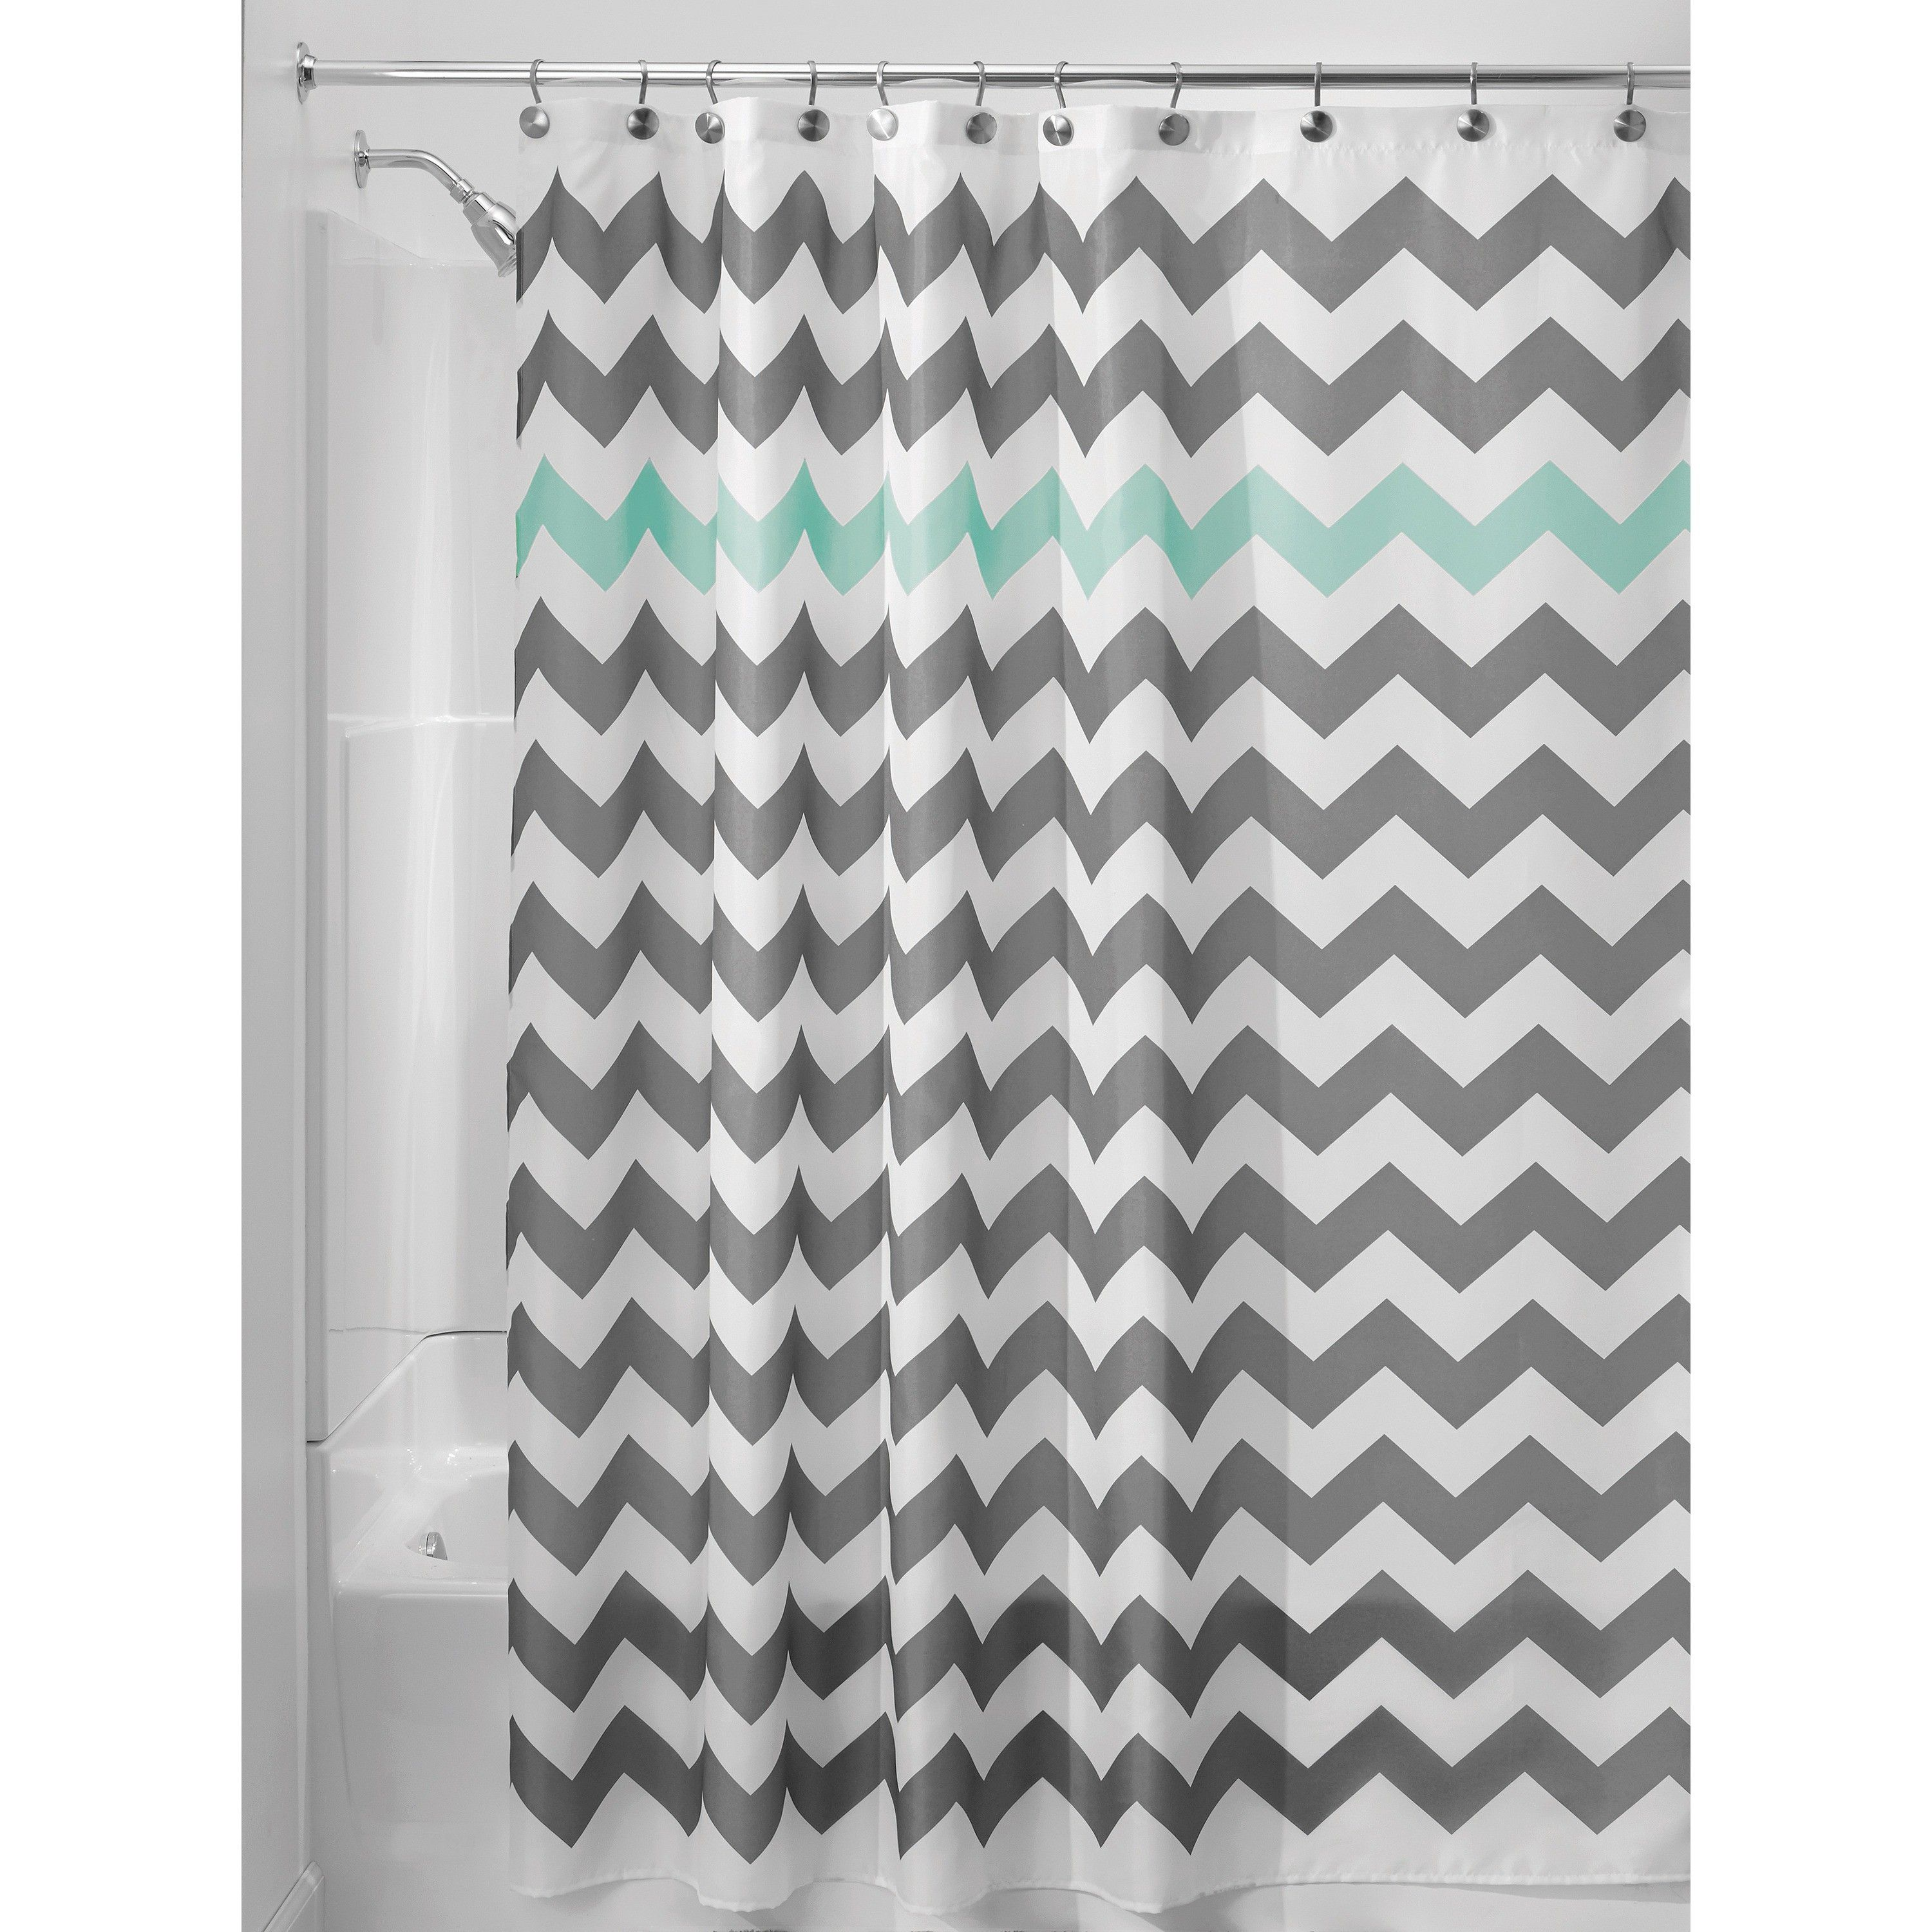 Give Your Bath A Modern Update With The Interdesign Chevron Shower